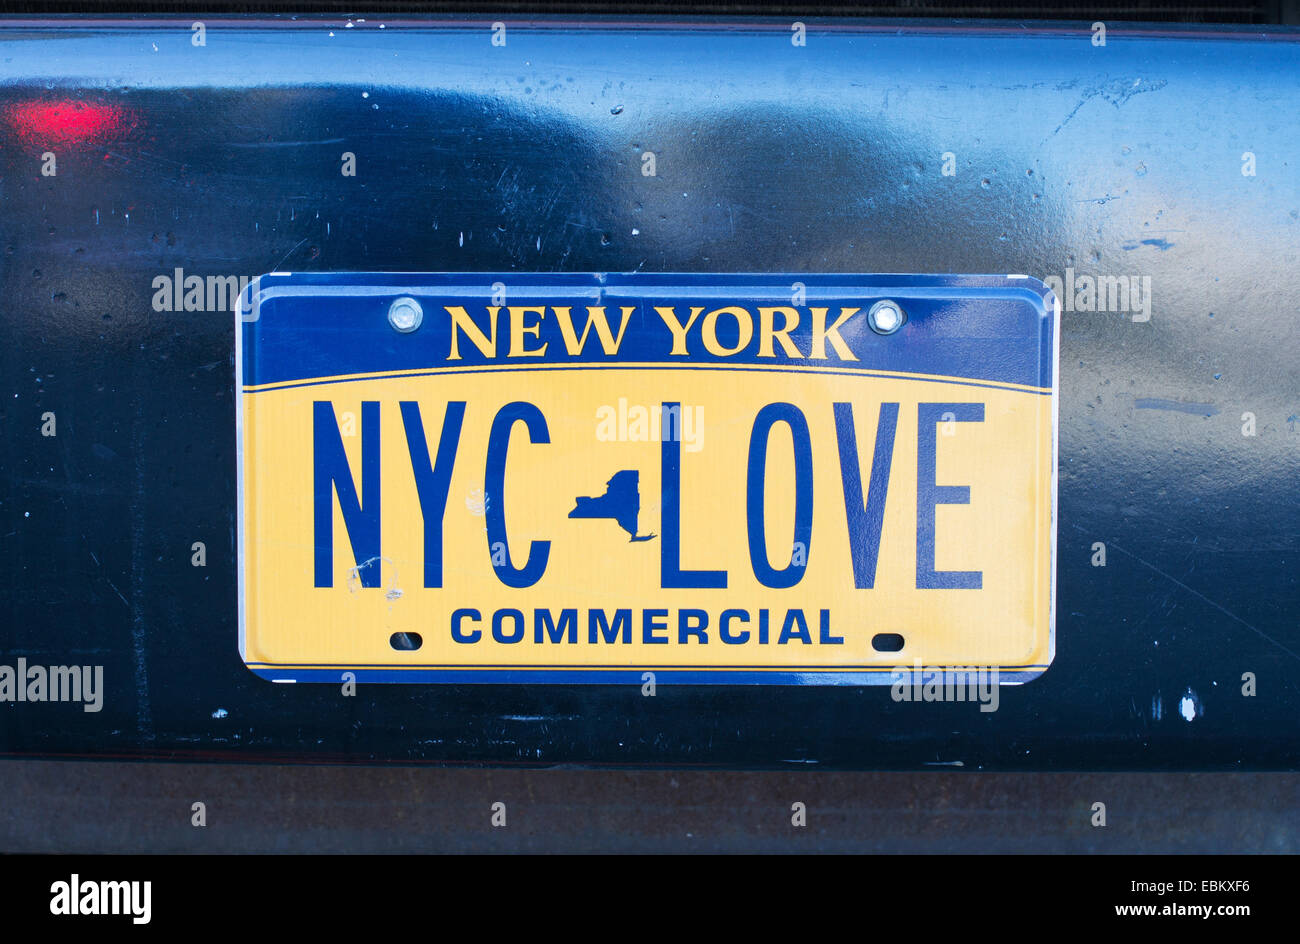 nyc-love-license-plate-seen-in-brooklyn-